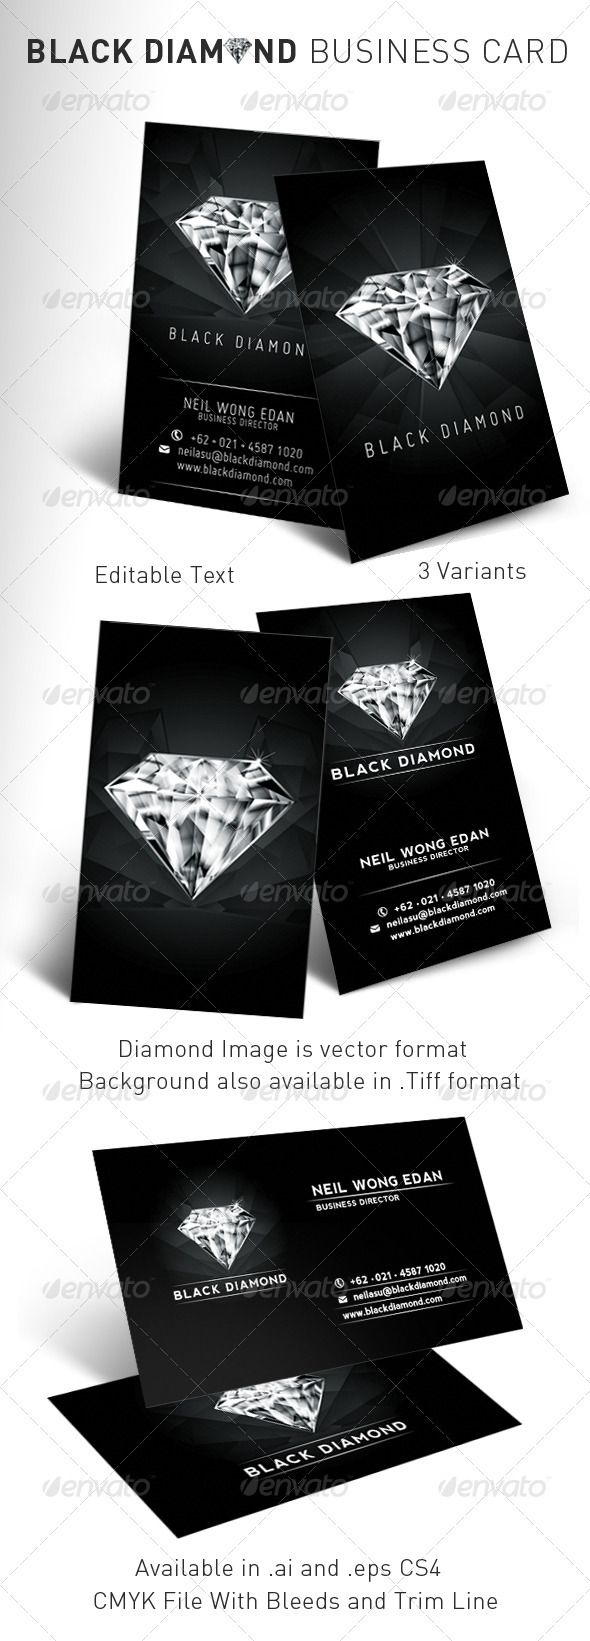 Black diamond business card business cards business and card black diamond business card magicingreecefo Image collections